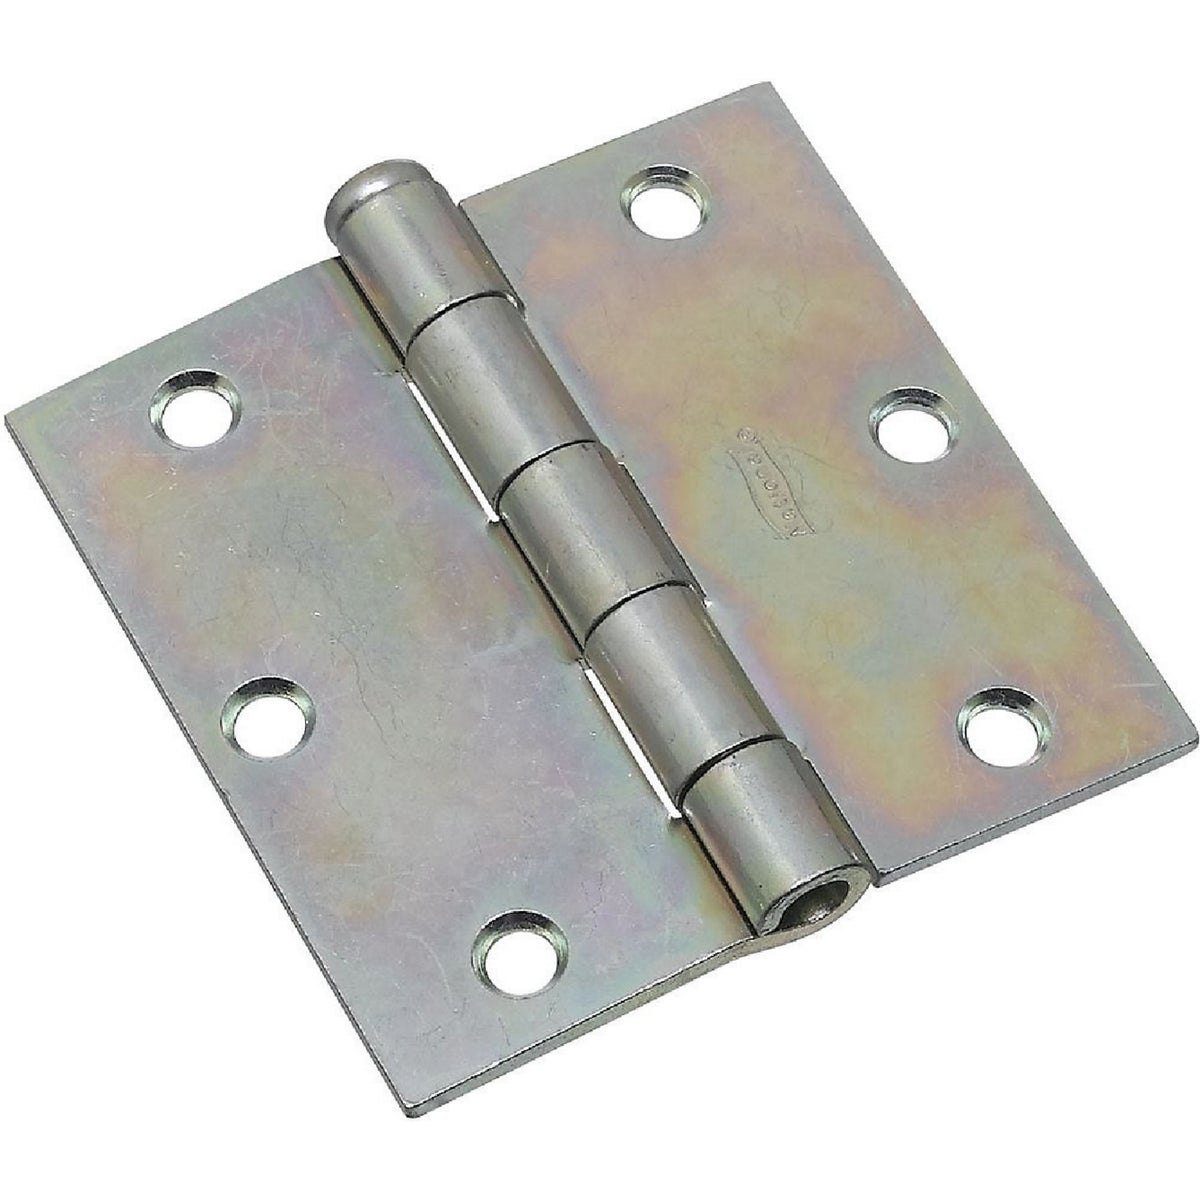 "3-1/2"" ZN BROAD HINGE - N195669 by National Mfg Co"